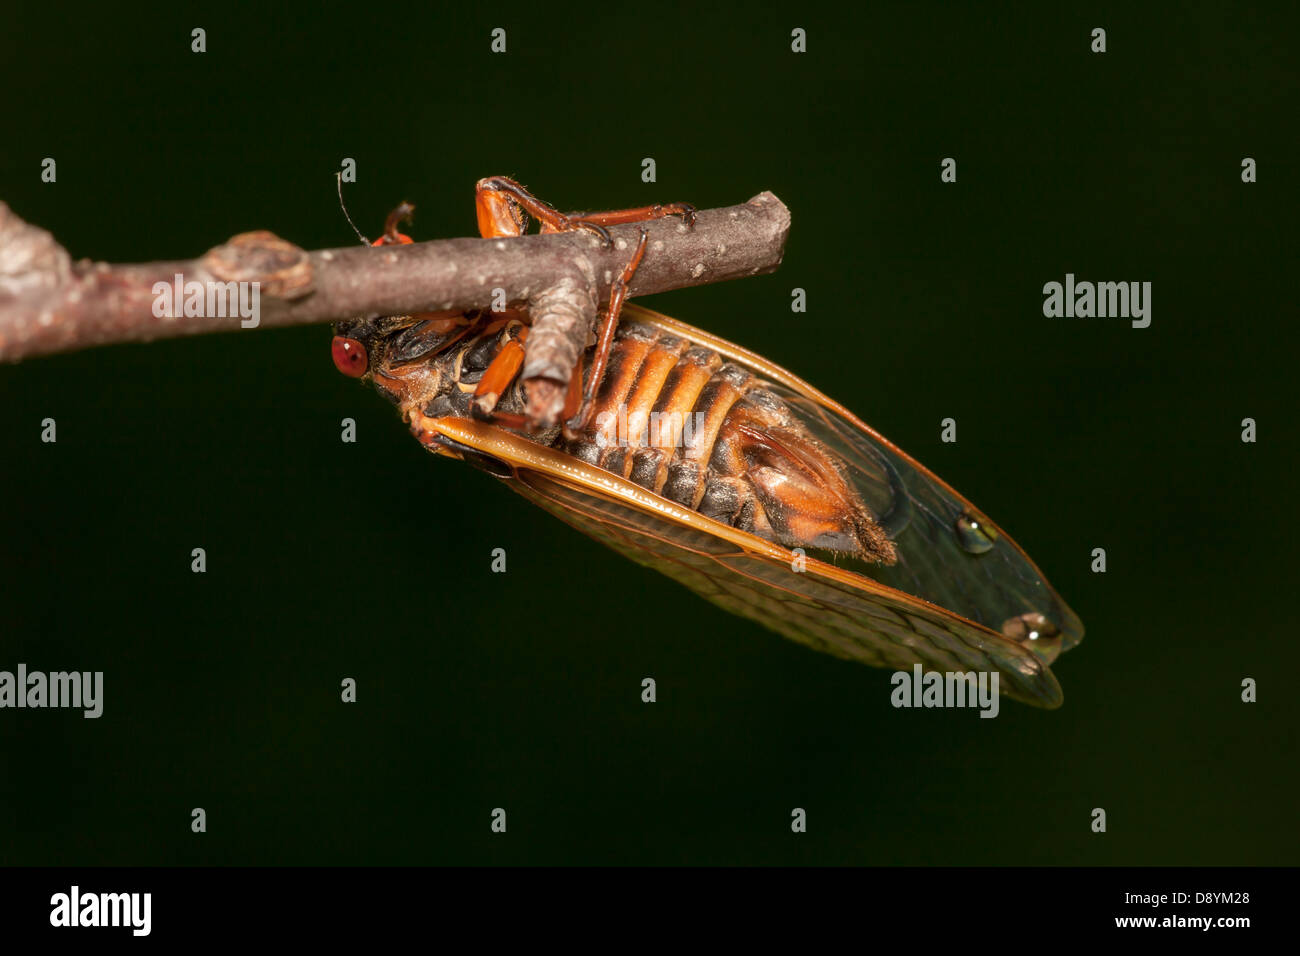 An adult female 17-year periodical cicada (Magicicada septendecim) clings to a twig after emerging from its nymphal - Stock Image